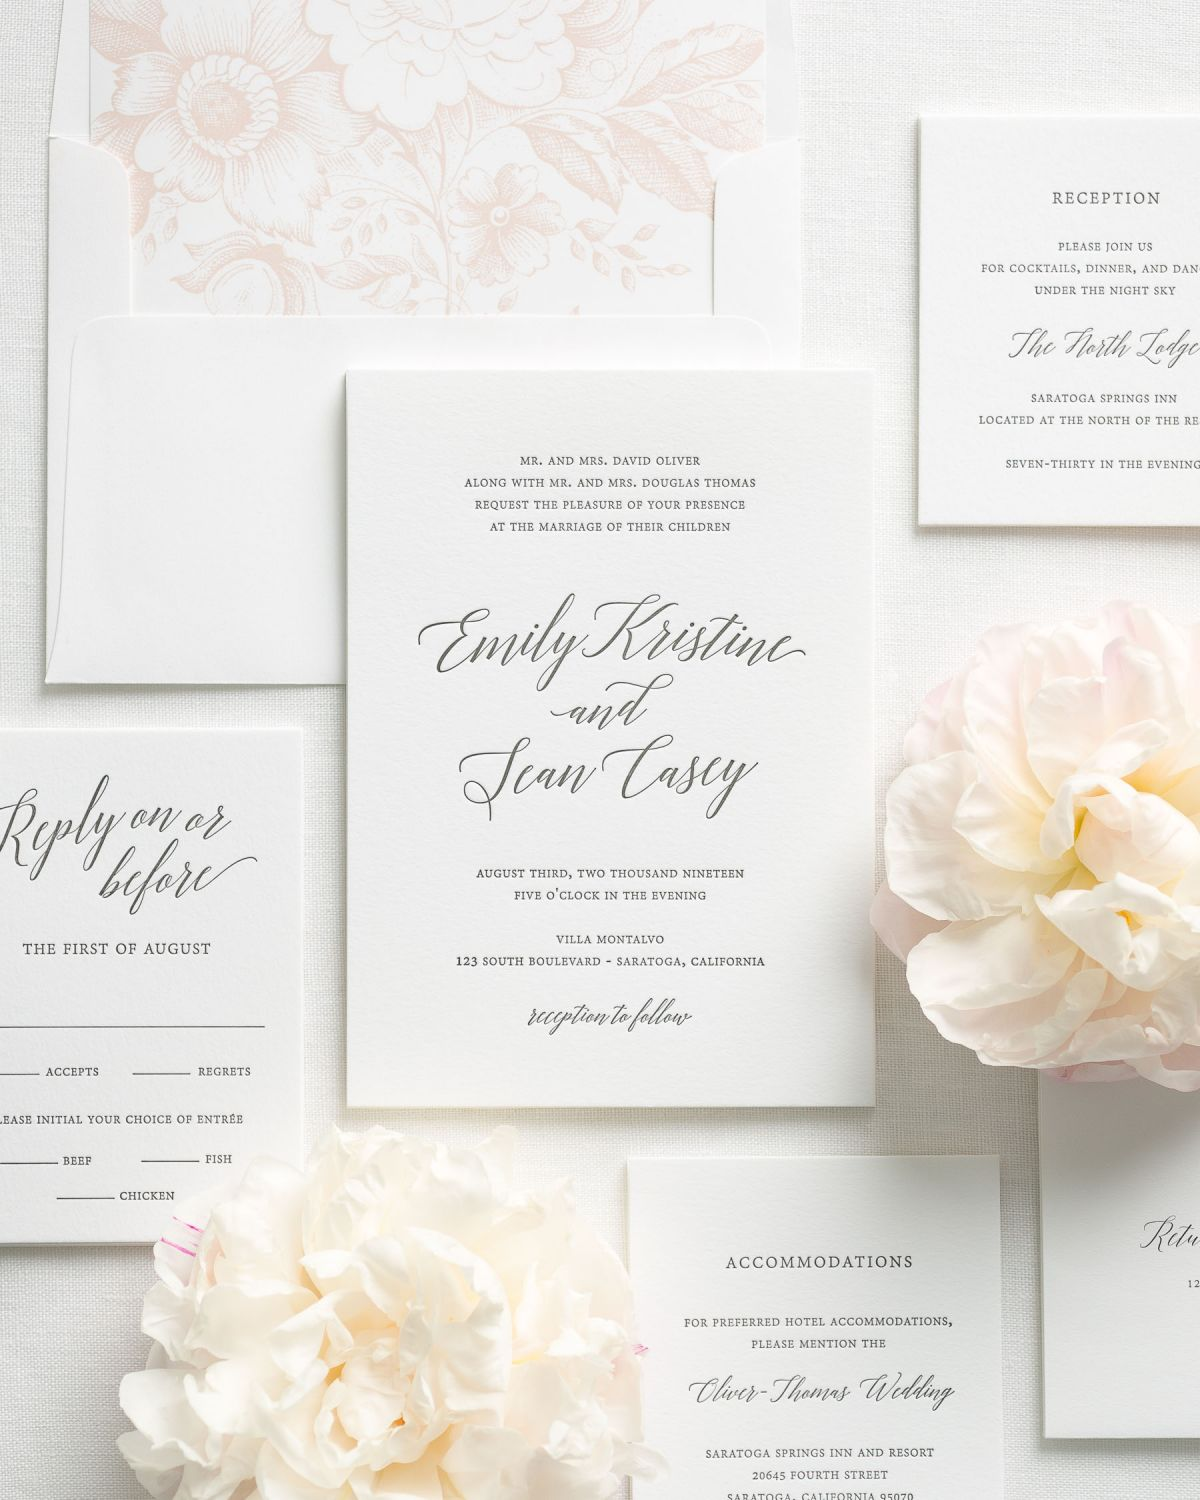 Calligraphy Wedding Invitations with a blush pink floral liner